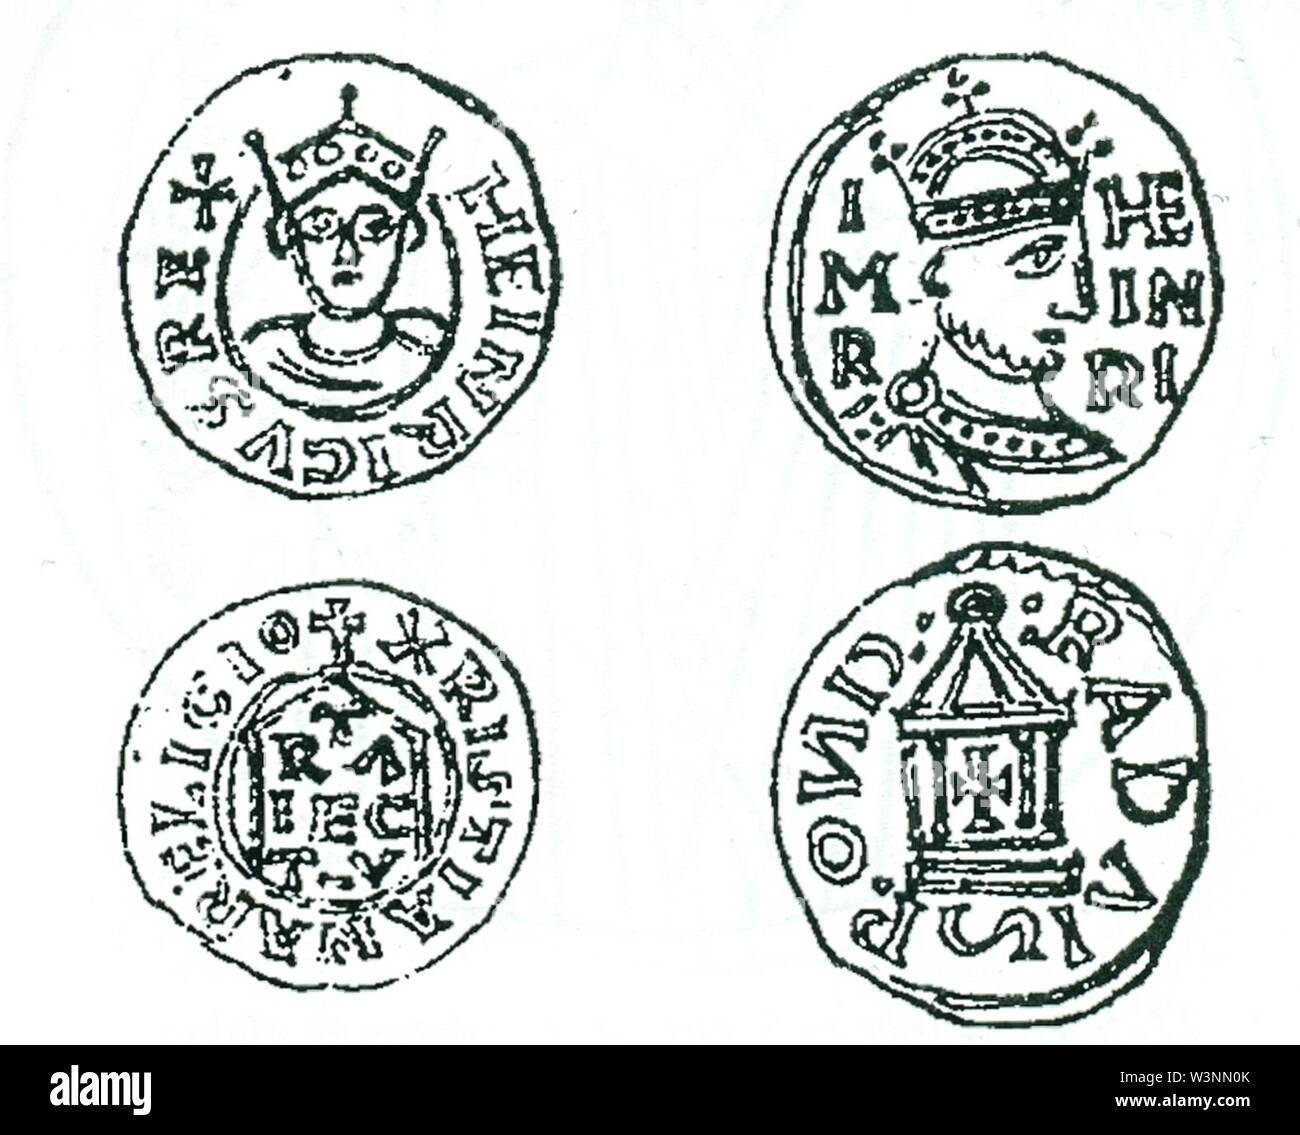 Coins of Henry II Holy Roman Emperor. - Stock Image